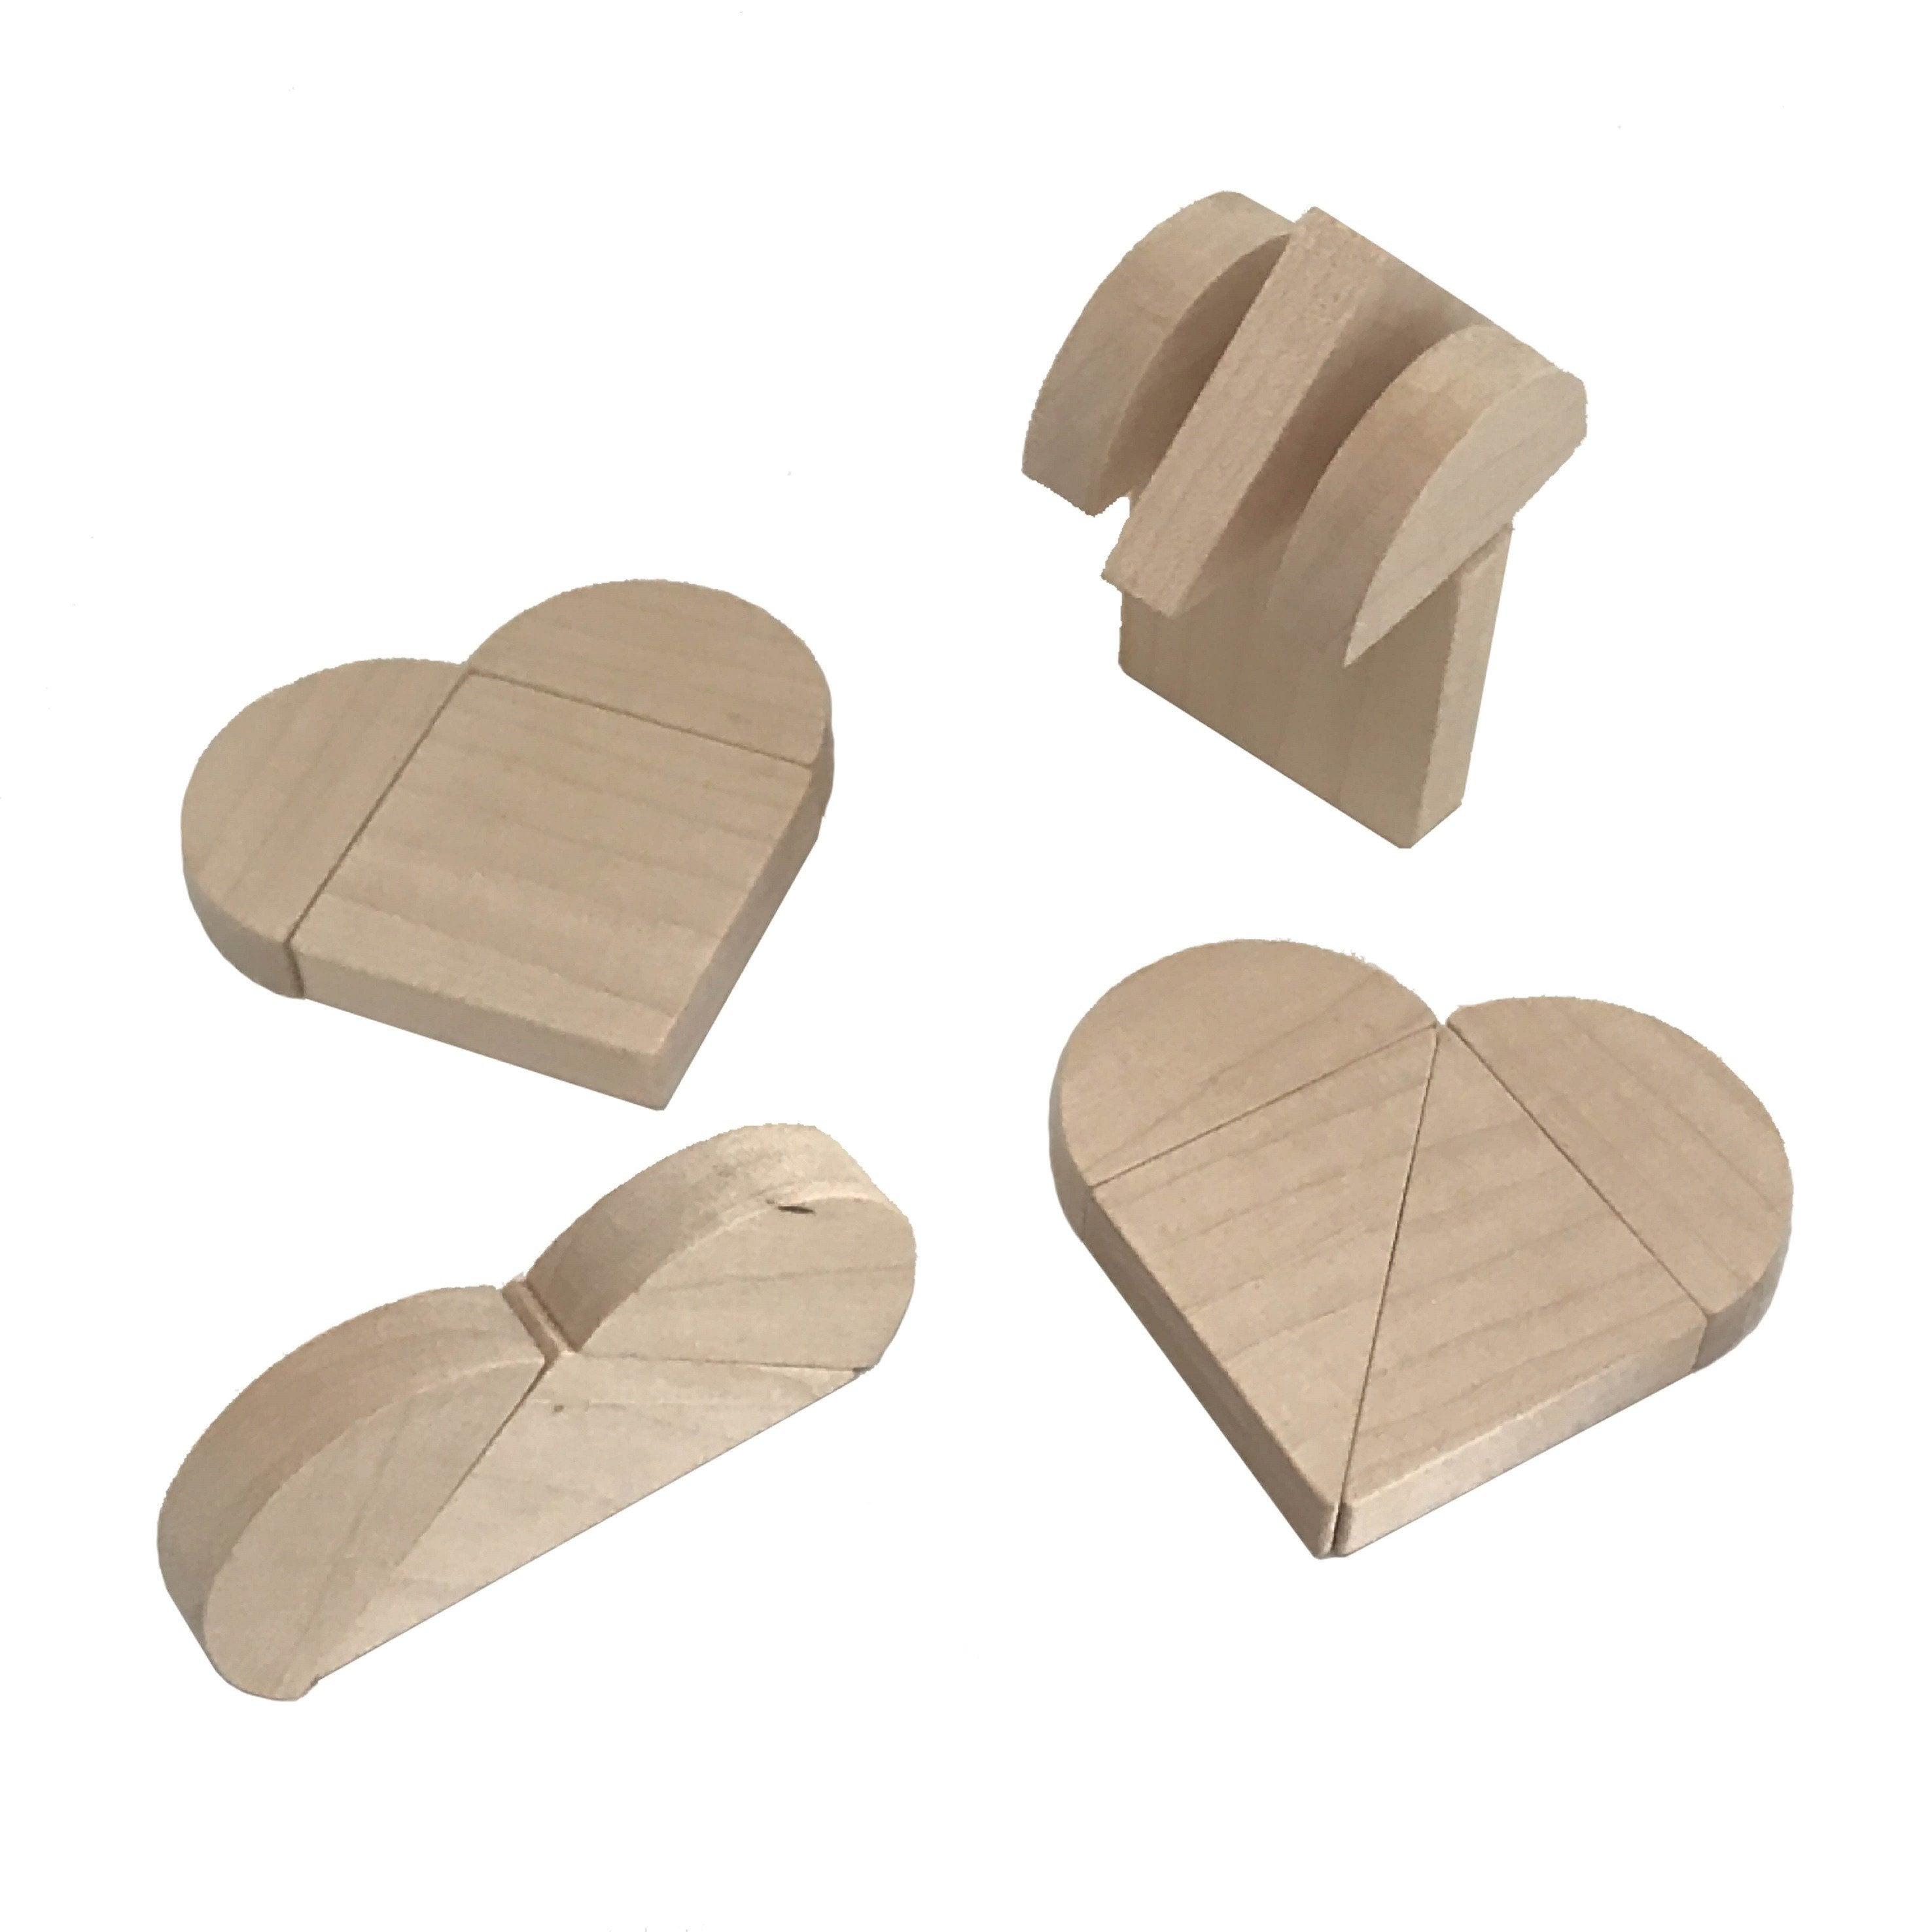 Wooden Heartblocks - Package with 3 packs